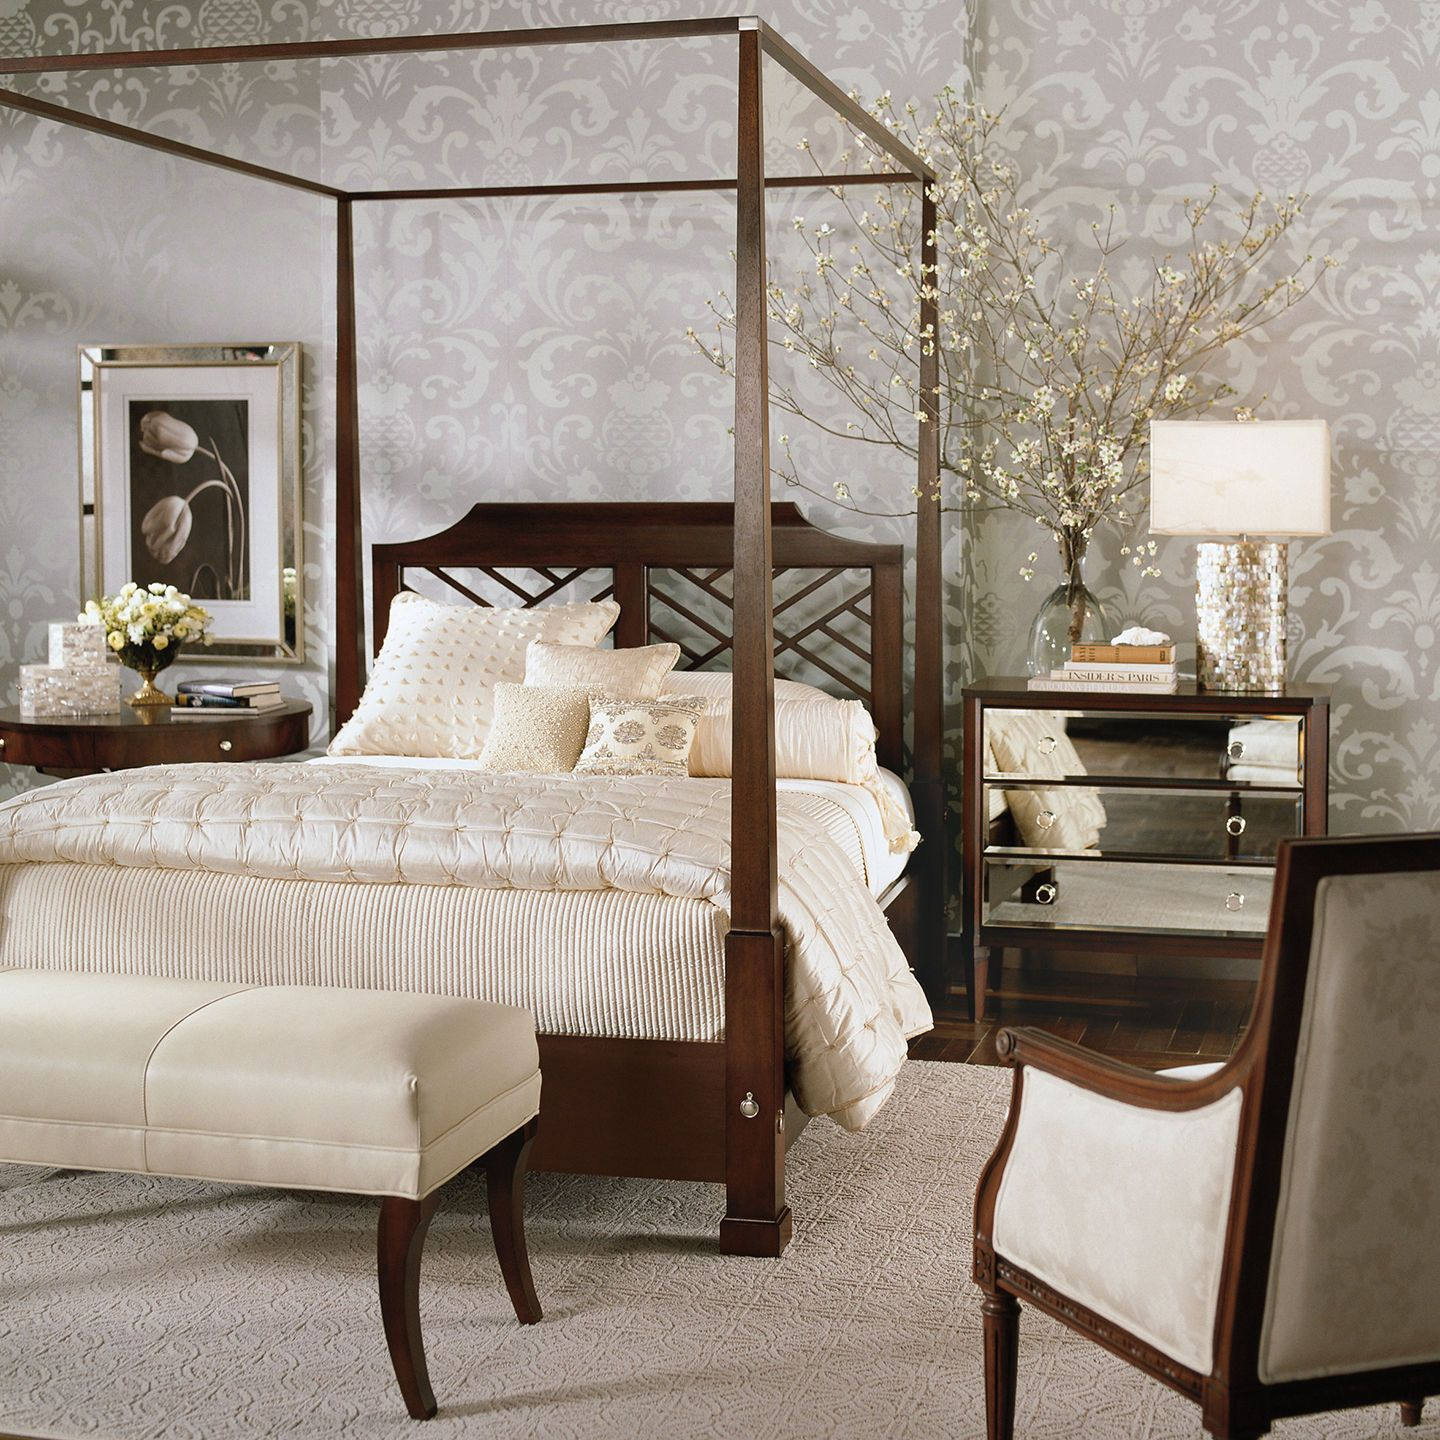 Ethan Allen Bedroom Sets Zen Type Bedroom Design Eiffel Tower Bedroom Decor Italian Bedroom Furniture Online: Neutral Interiors. Ethan Allen Bedroom Idea. Veronica